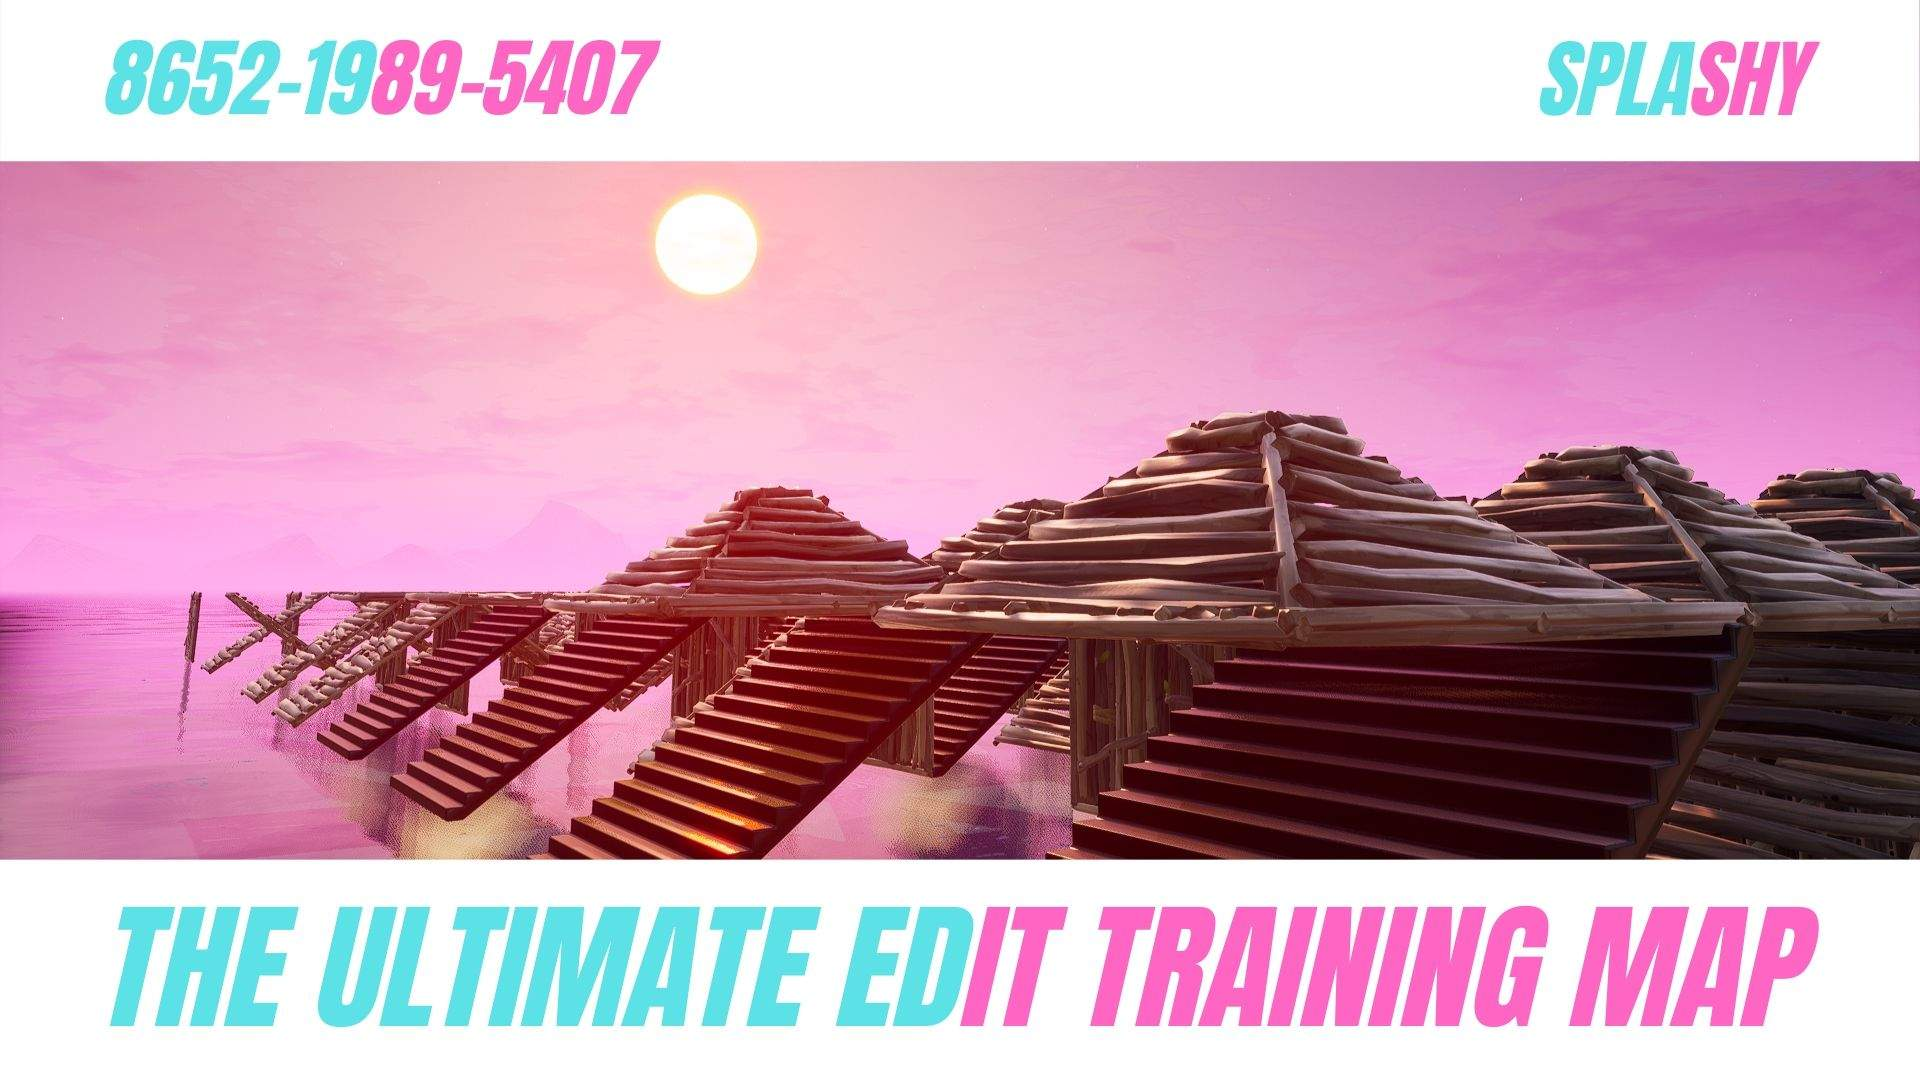 THE ULTIMATE EDIT TRAINING MAP